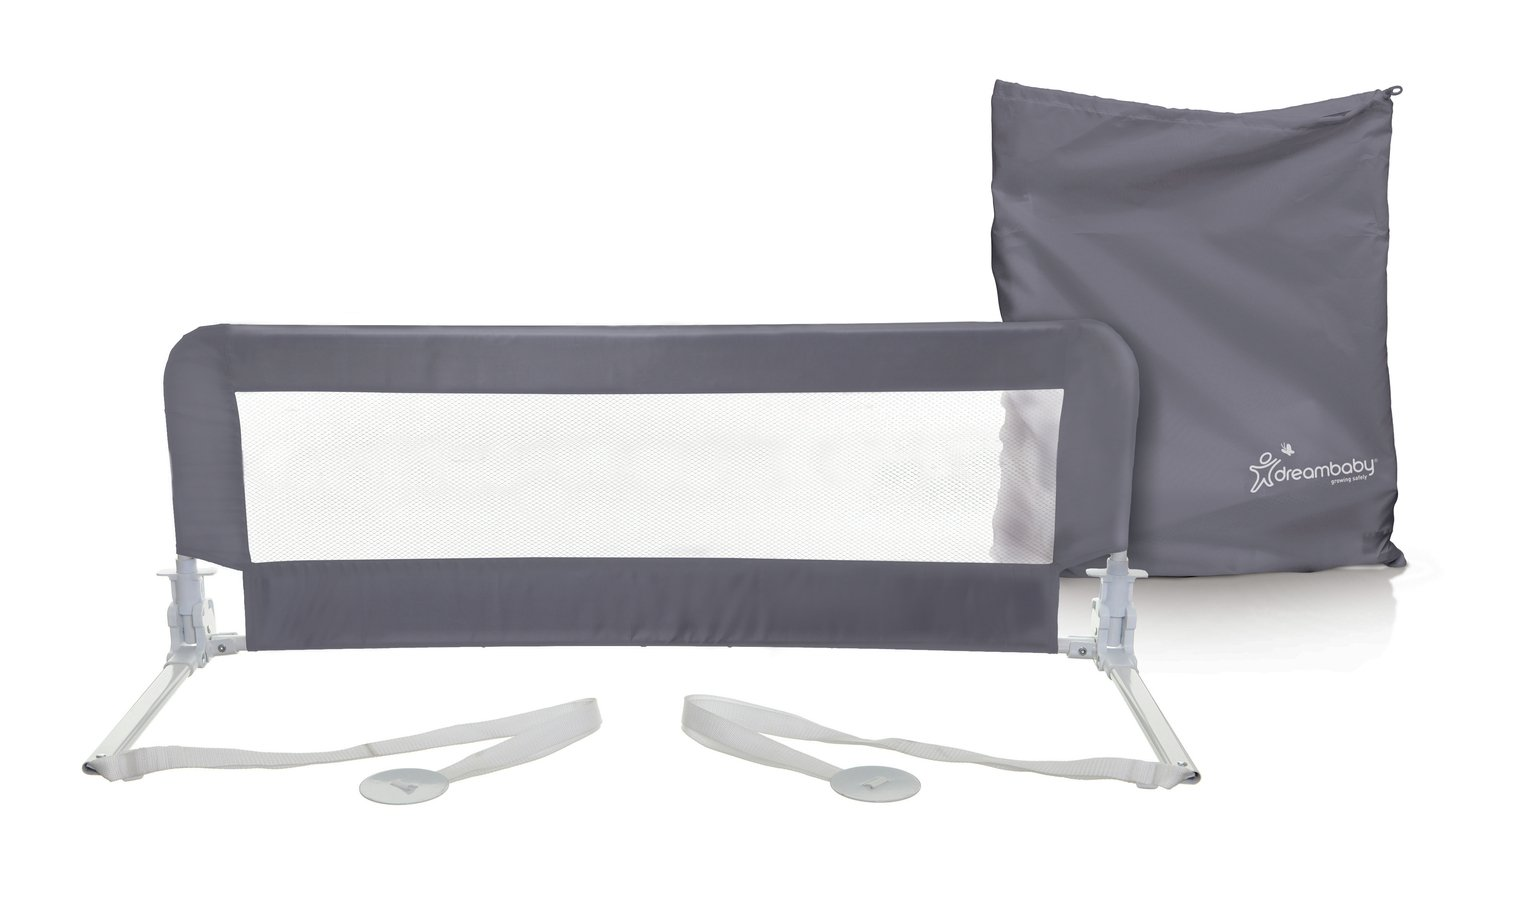 The Dreambaby Phoenix Bed Rail - Grey